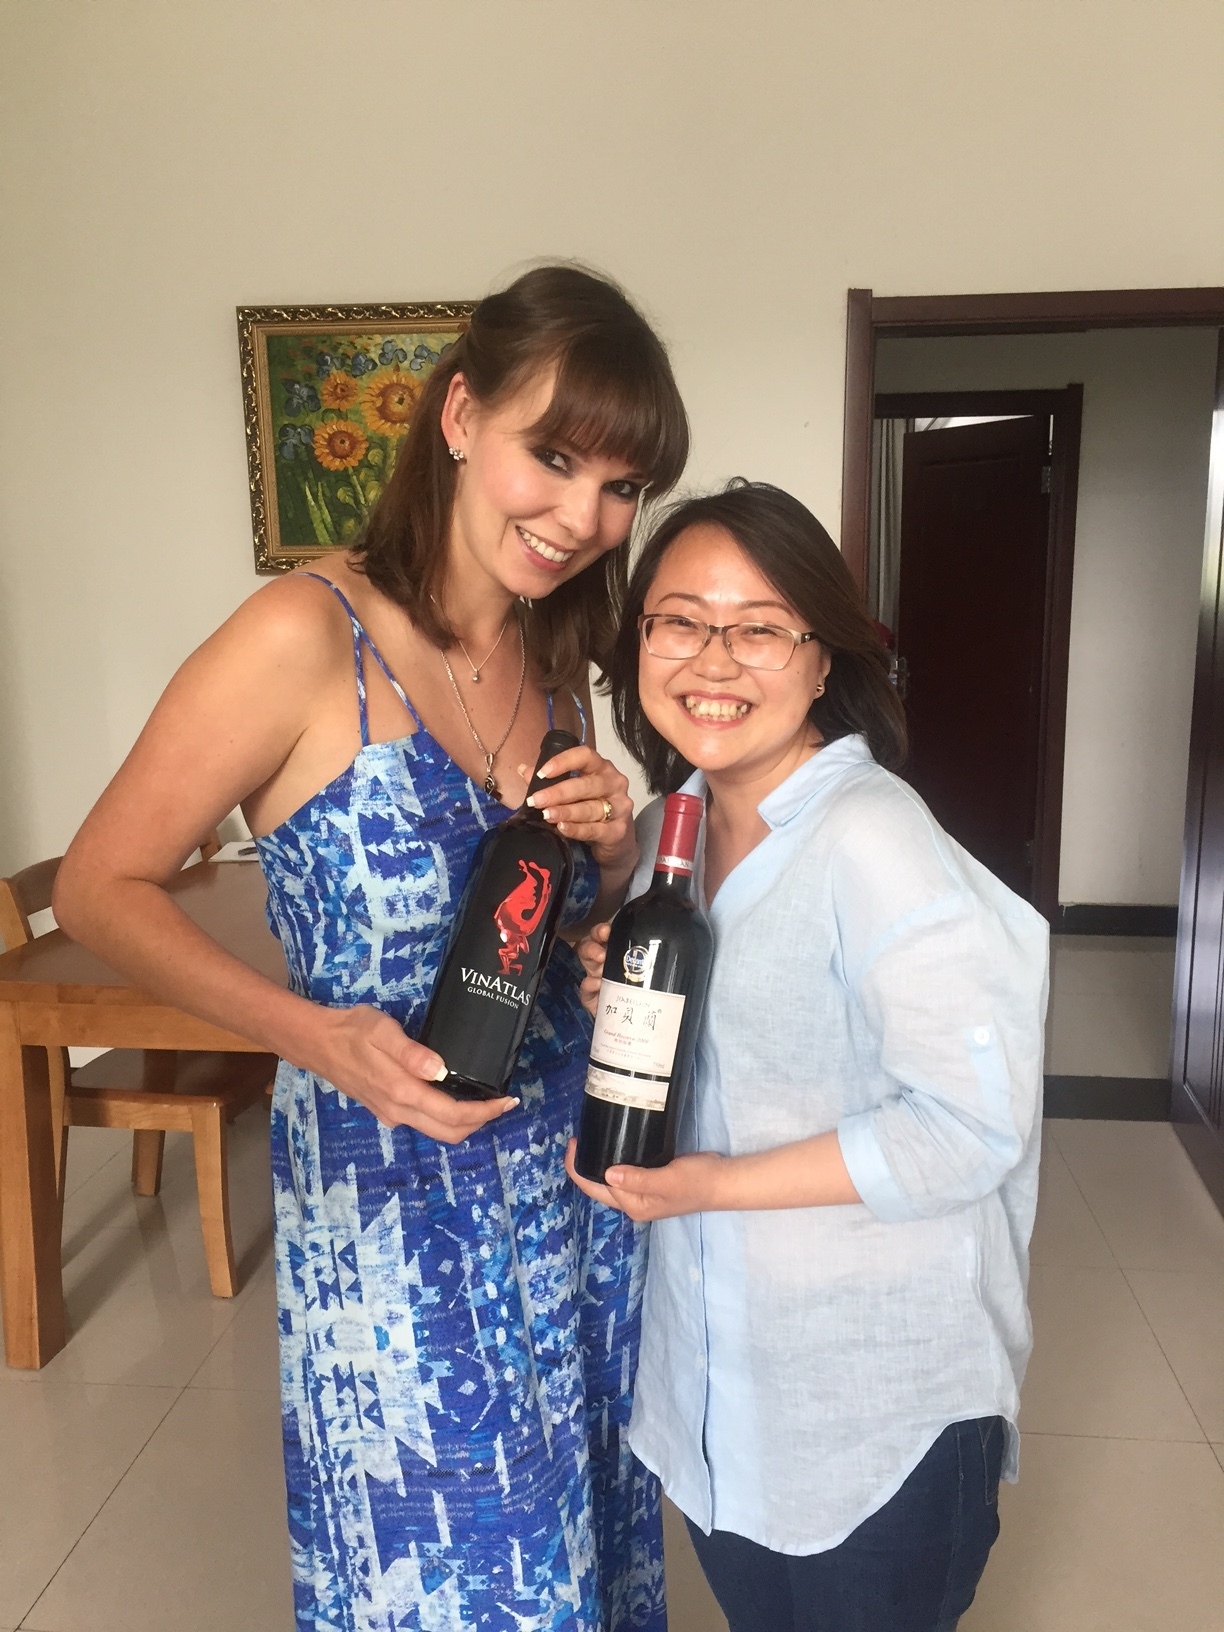 Tasting Decanter's 2011 World Wine Award winner with the winemaker herself, Zhang Jing